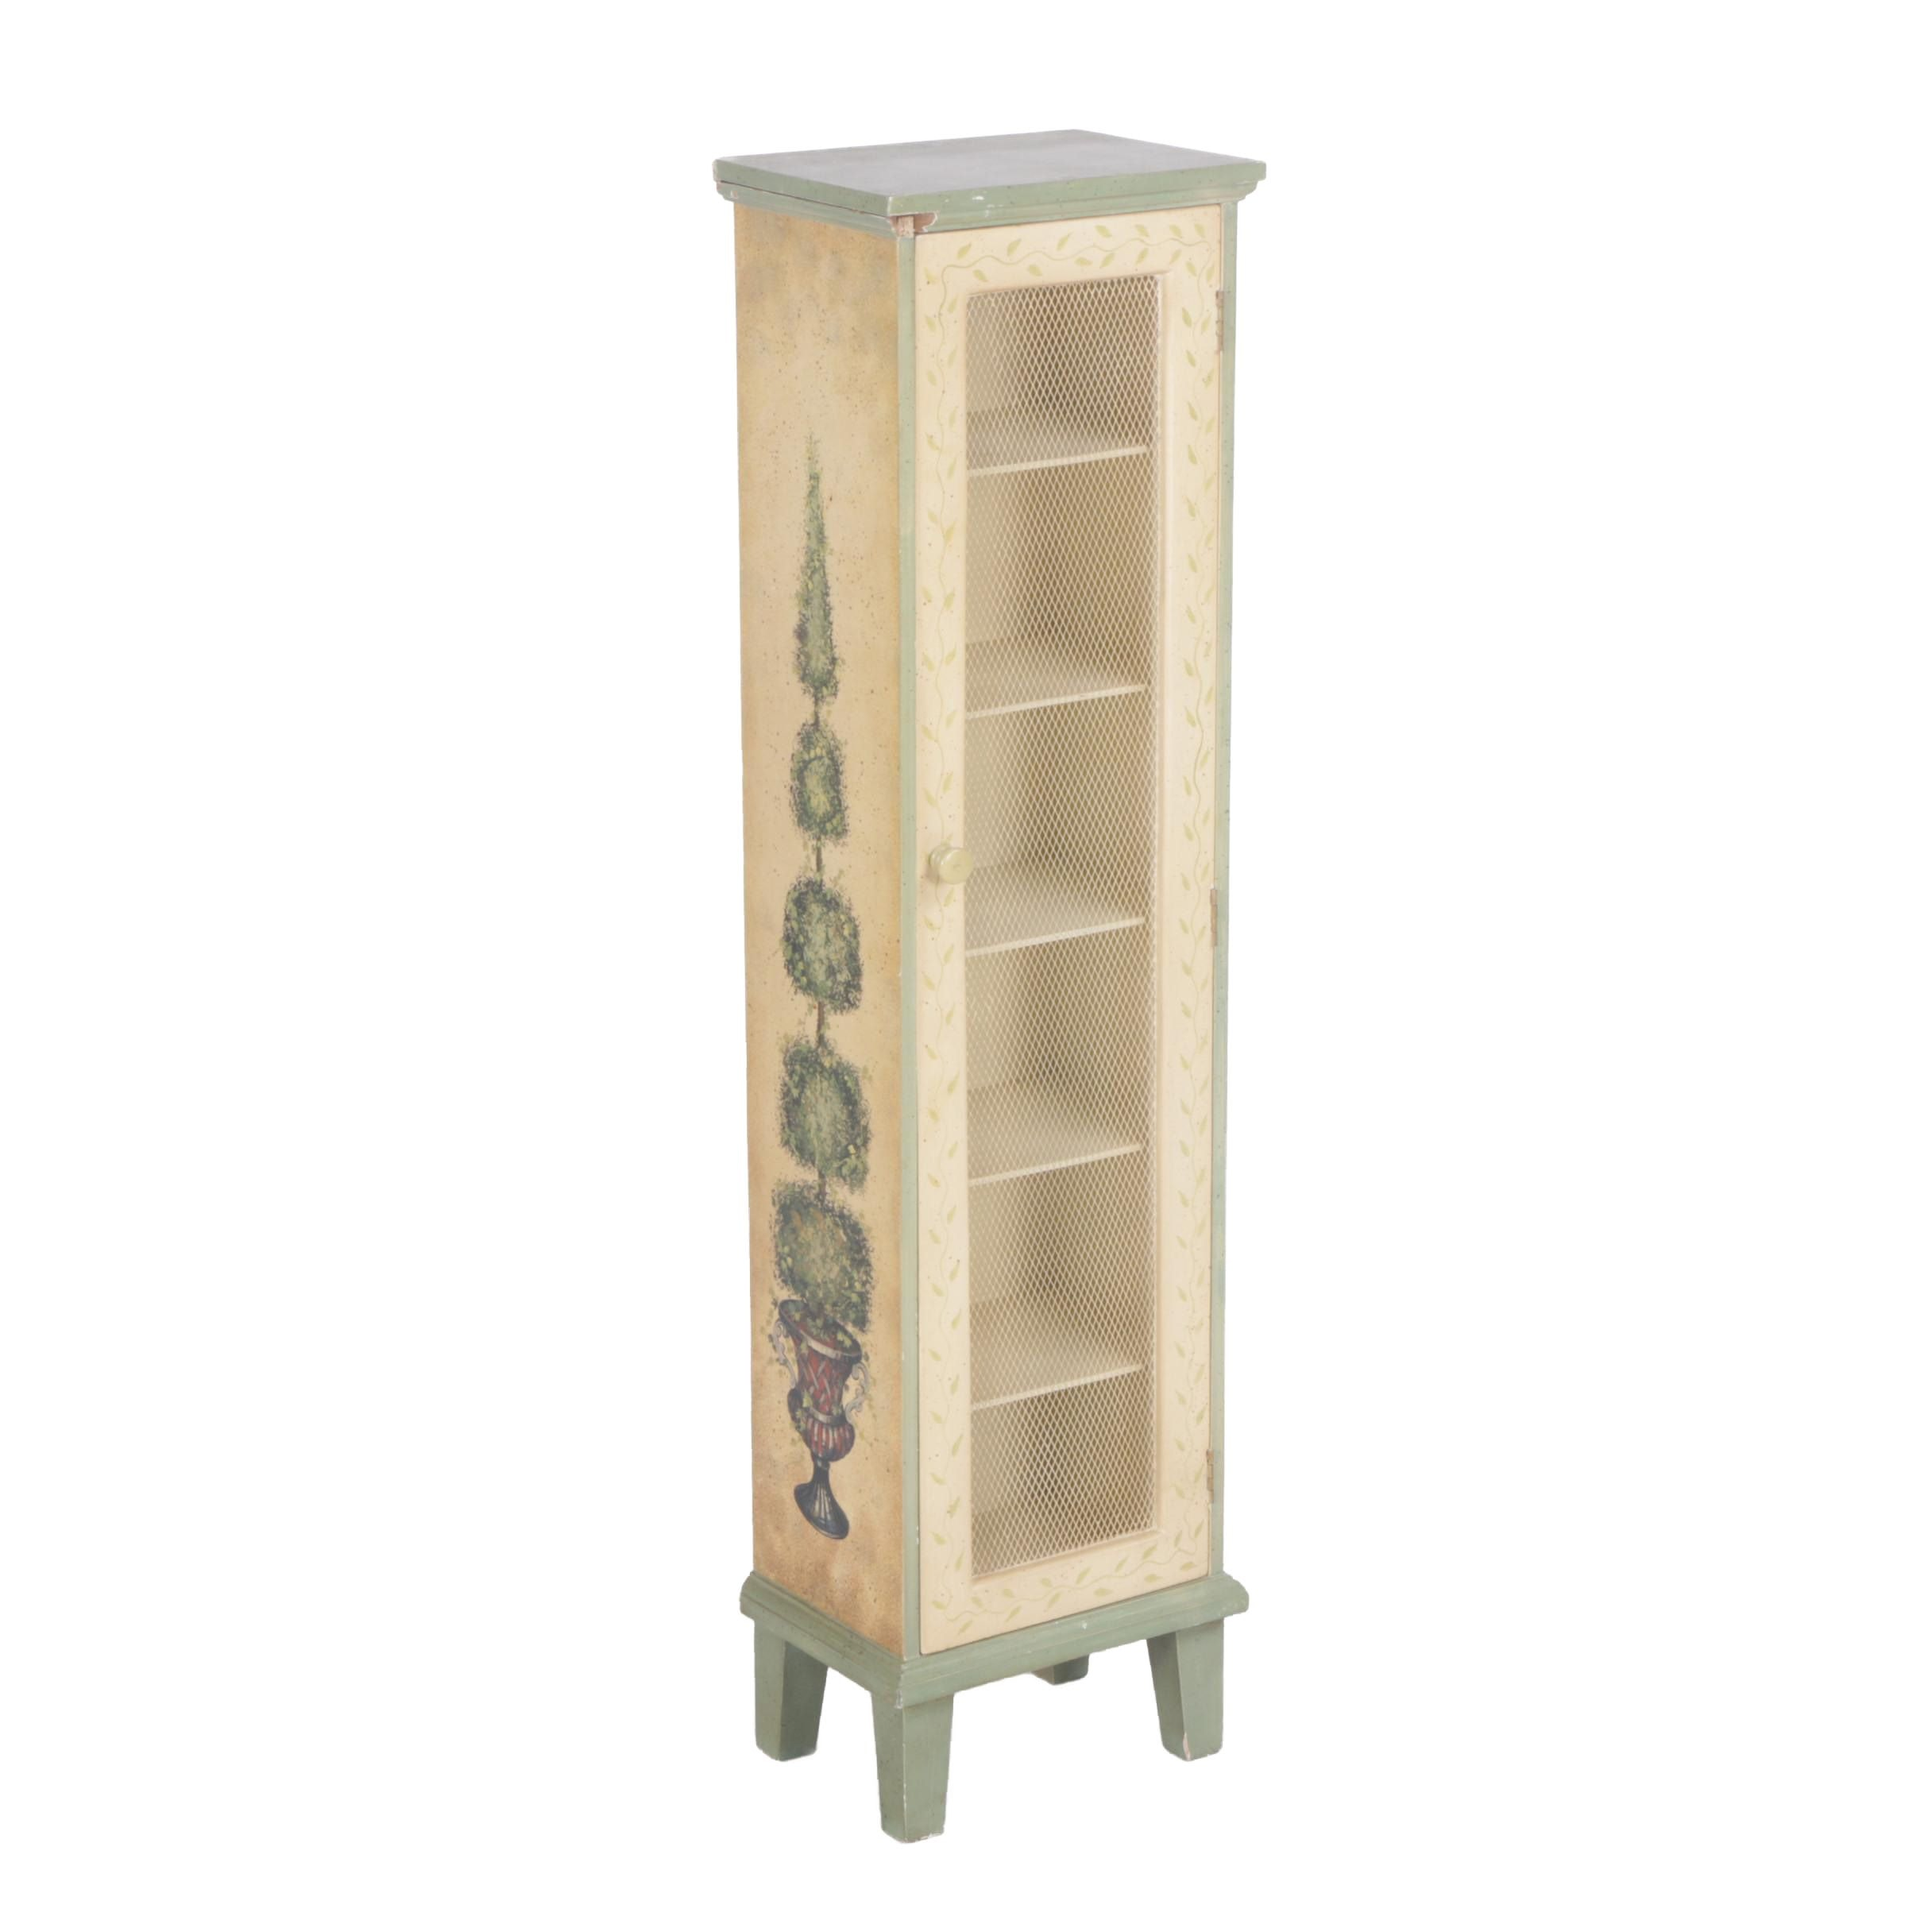 Floral Five Drawer Wooden Cabinet With Mesh Front